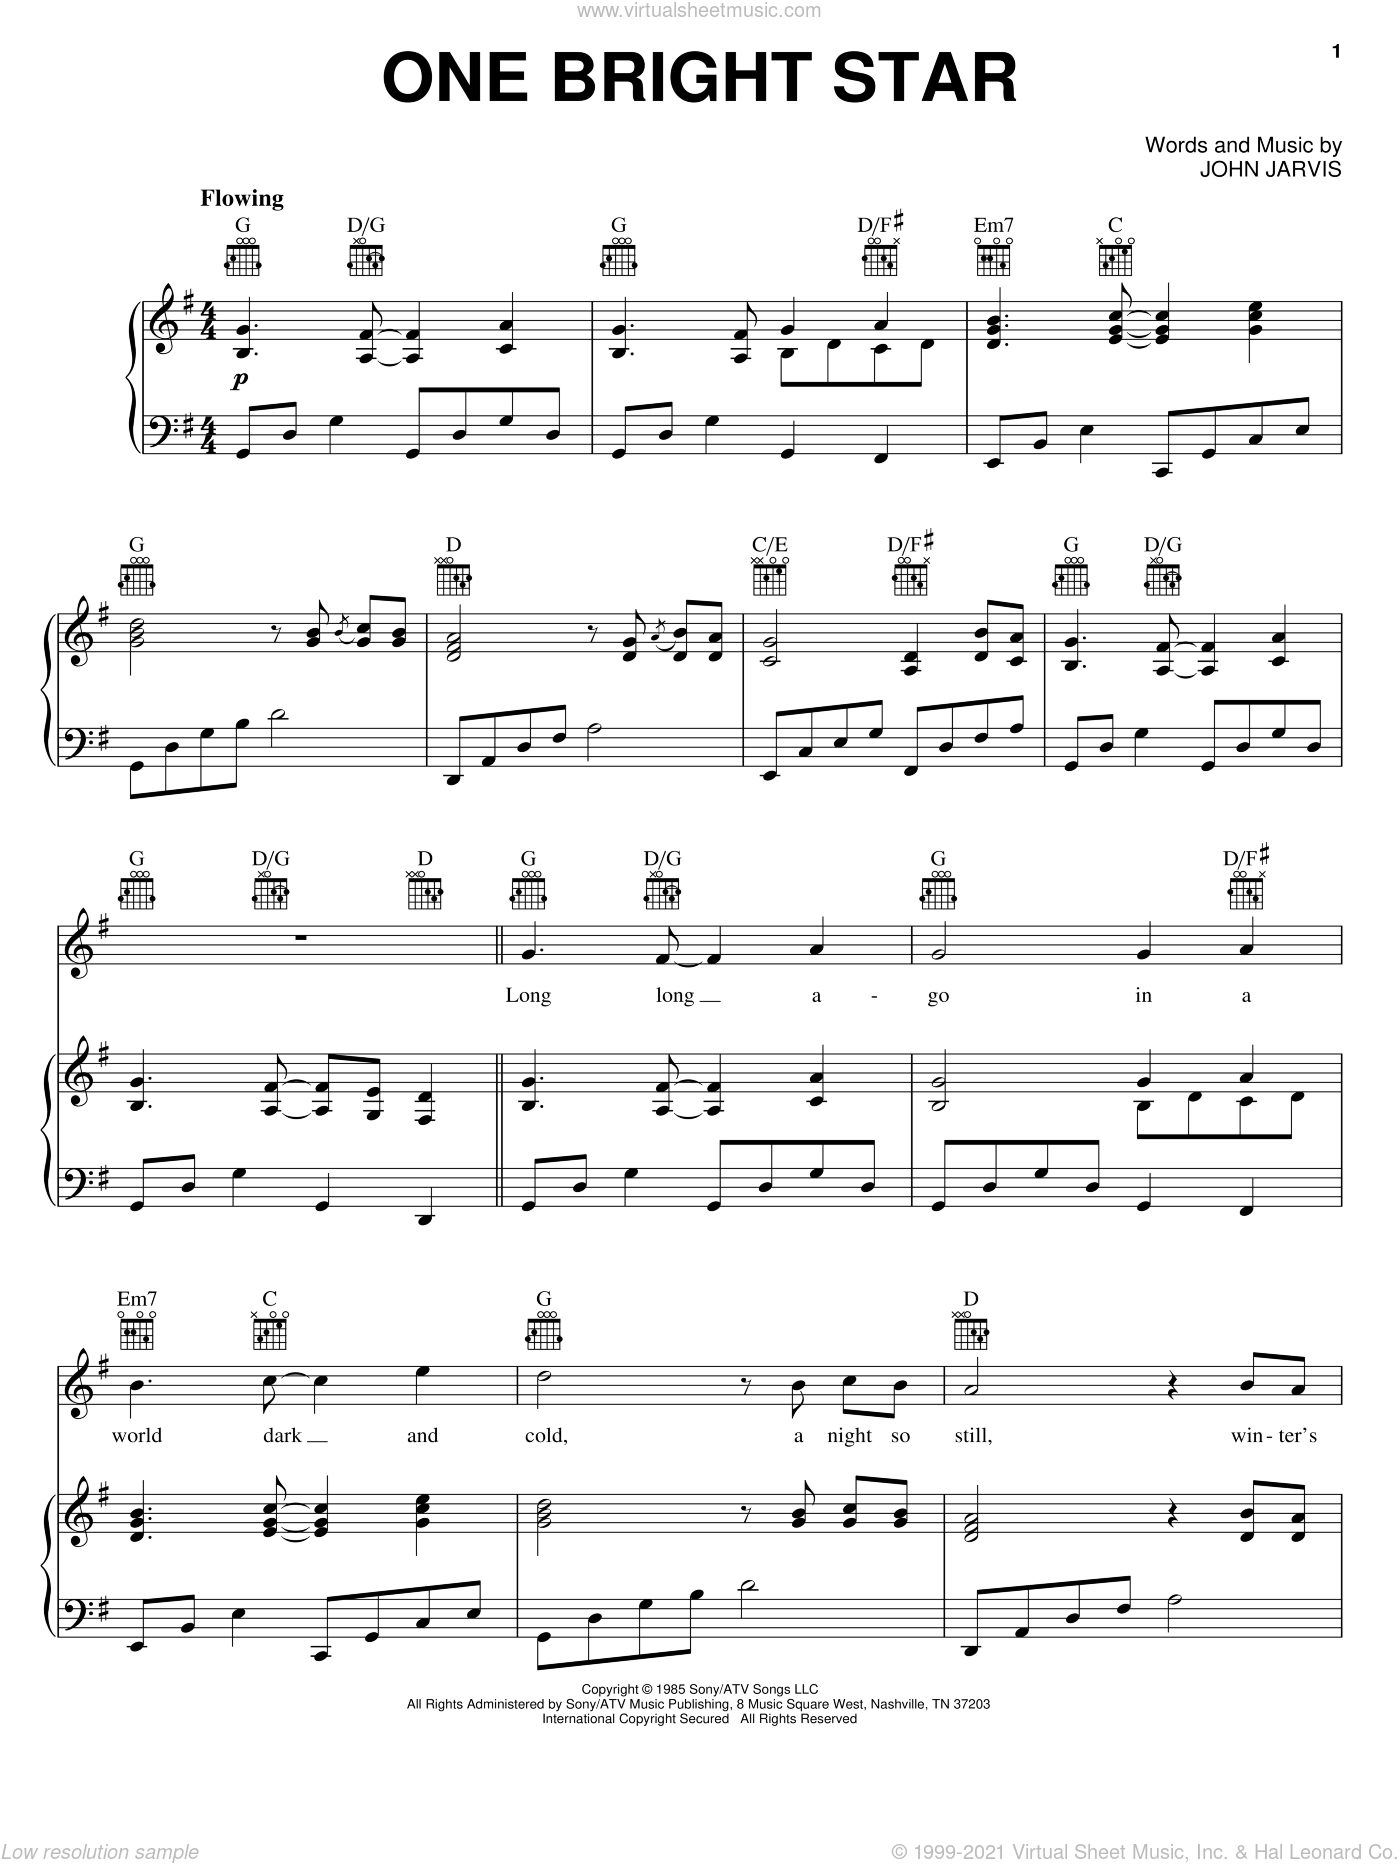 One Bright Star sheet music for voice, piano or guitar by John Jarvis